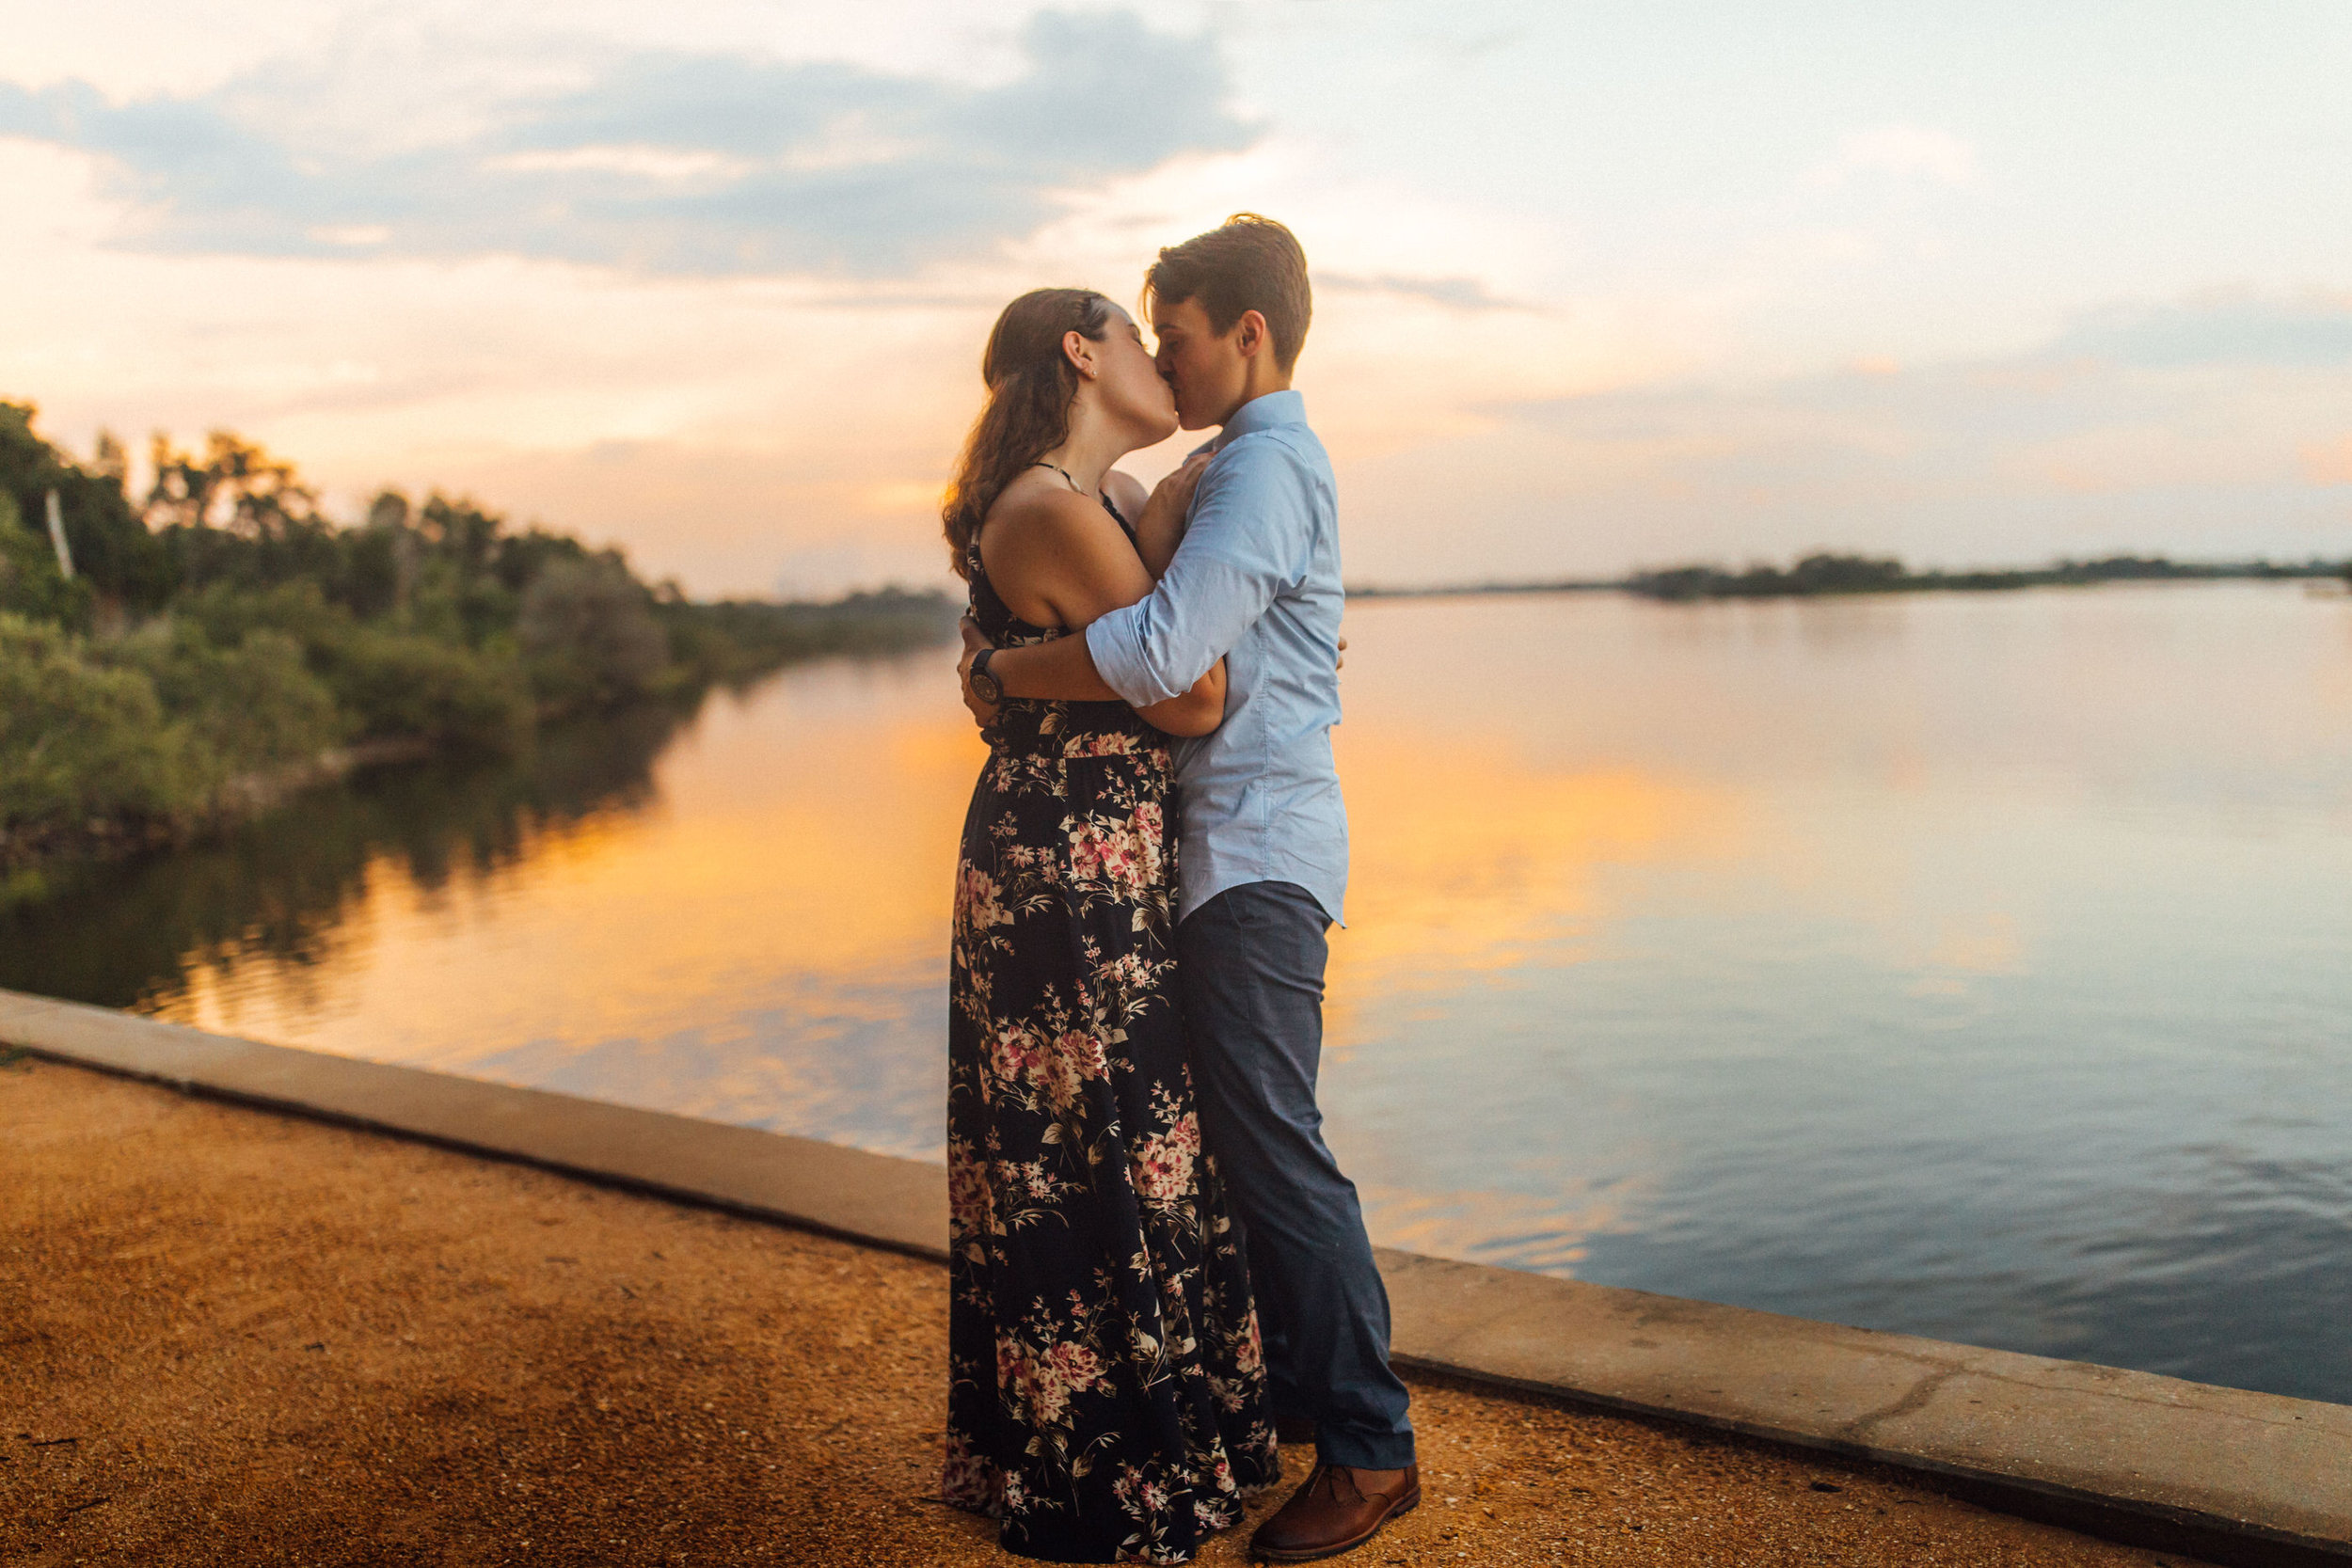 Orlando Natural Forest State Park Engagement Photos- Romantic LGBT Engaged Couples photos140.jpg